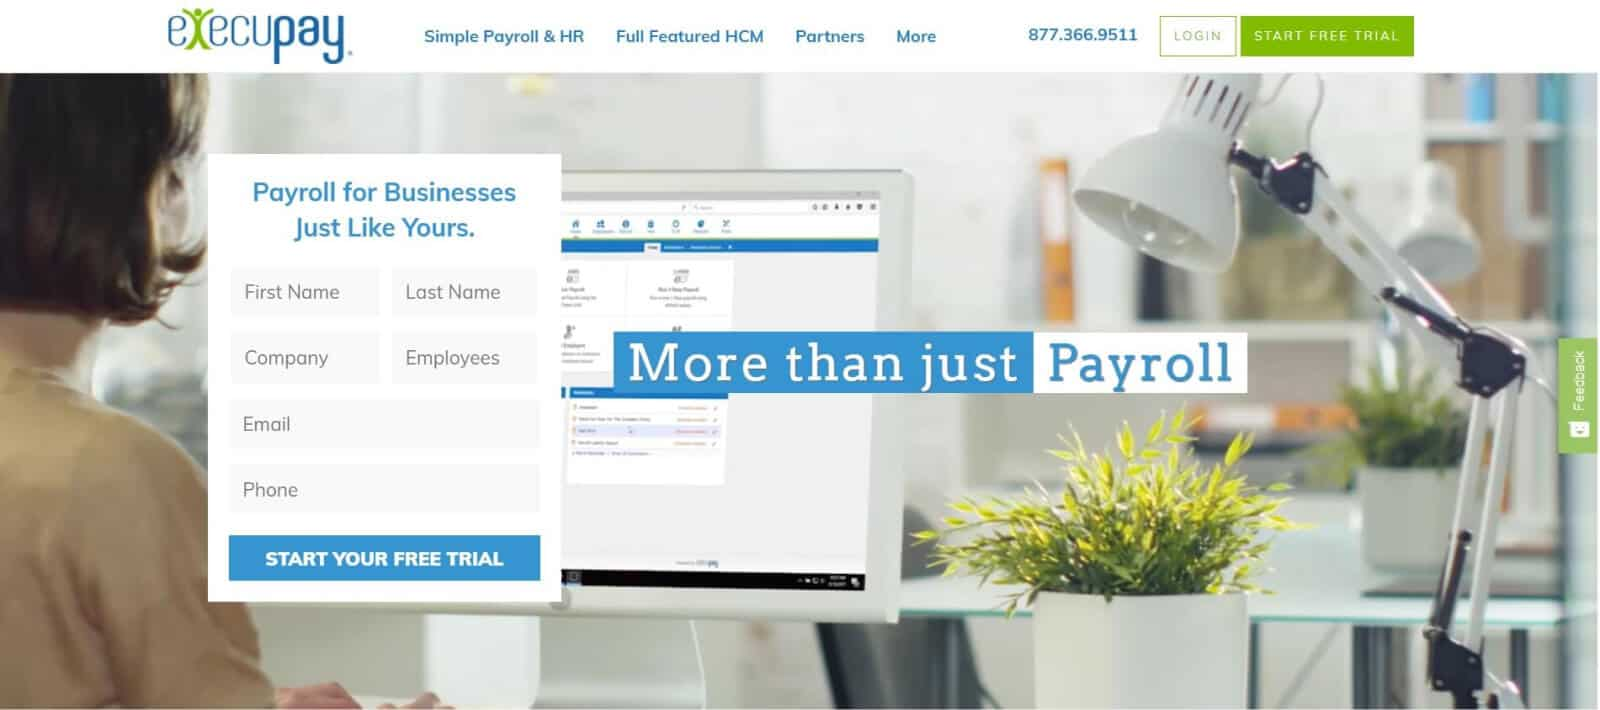 Execupay has been in business for over 40 years